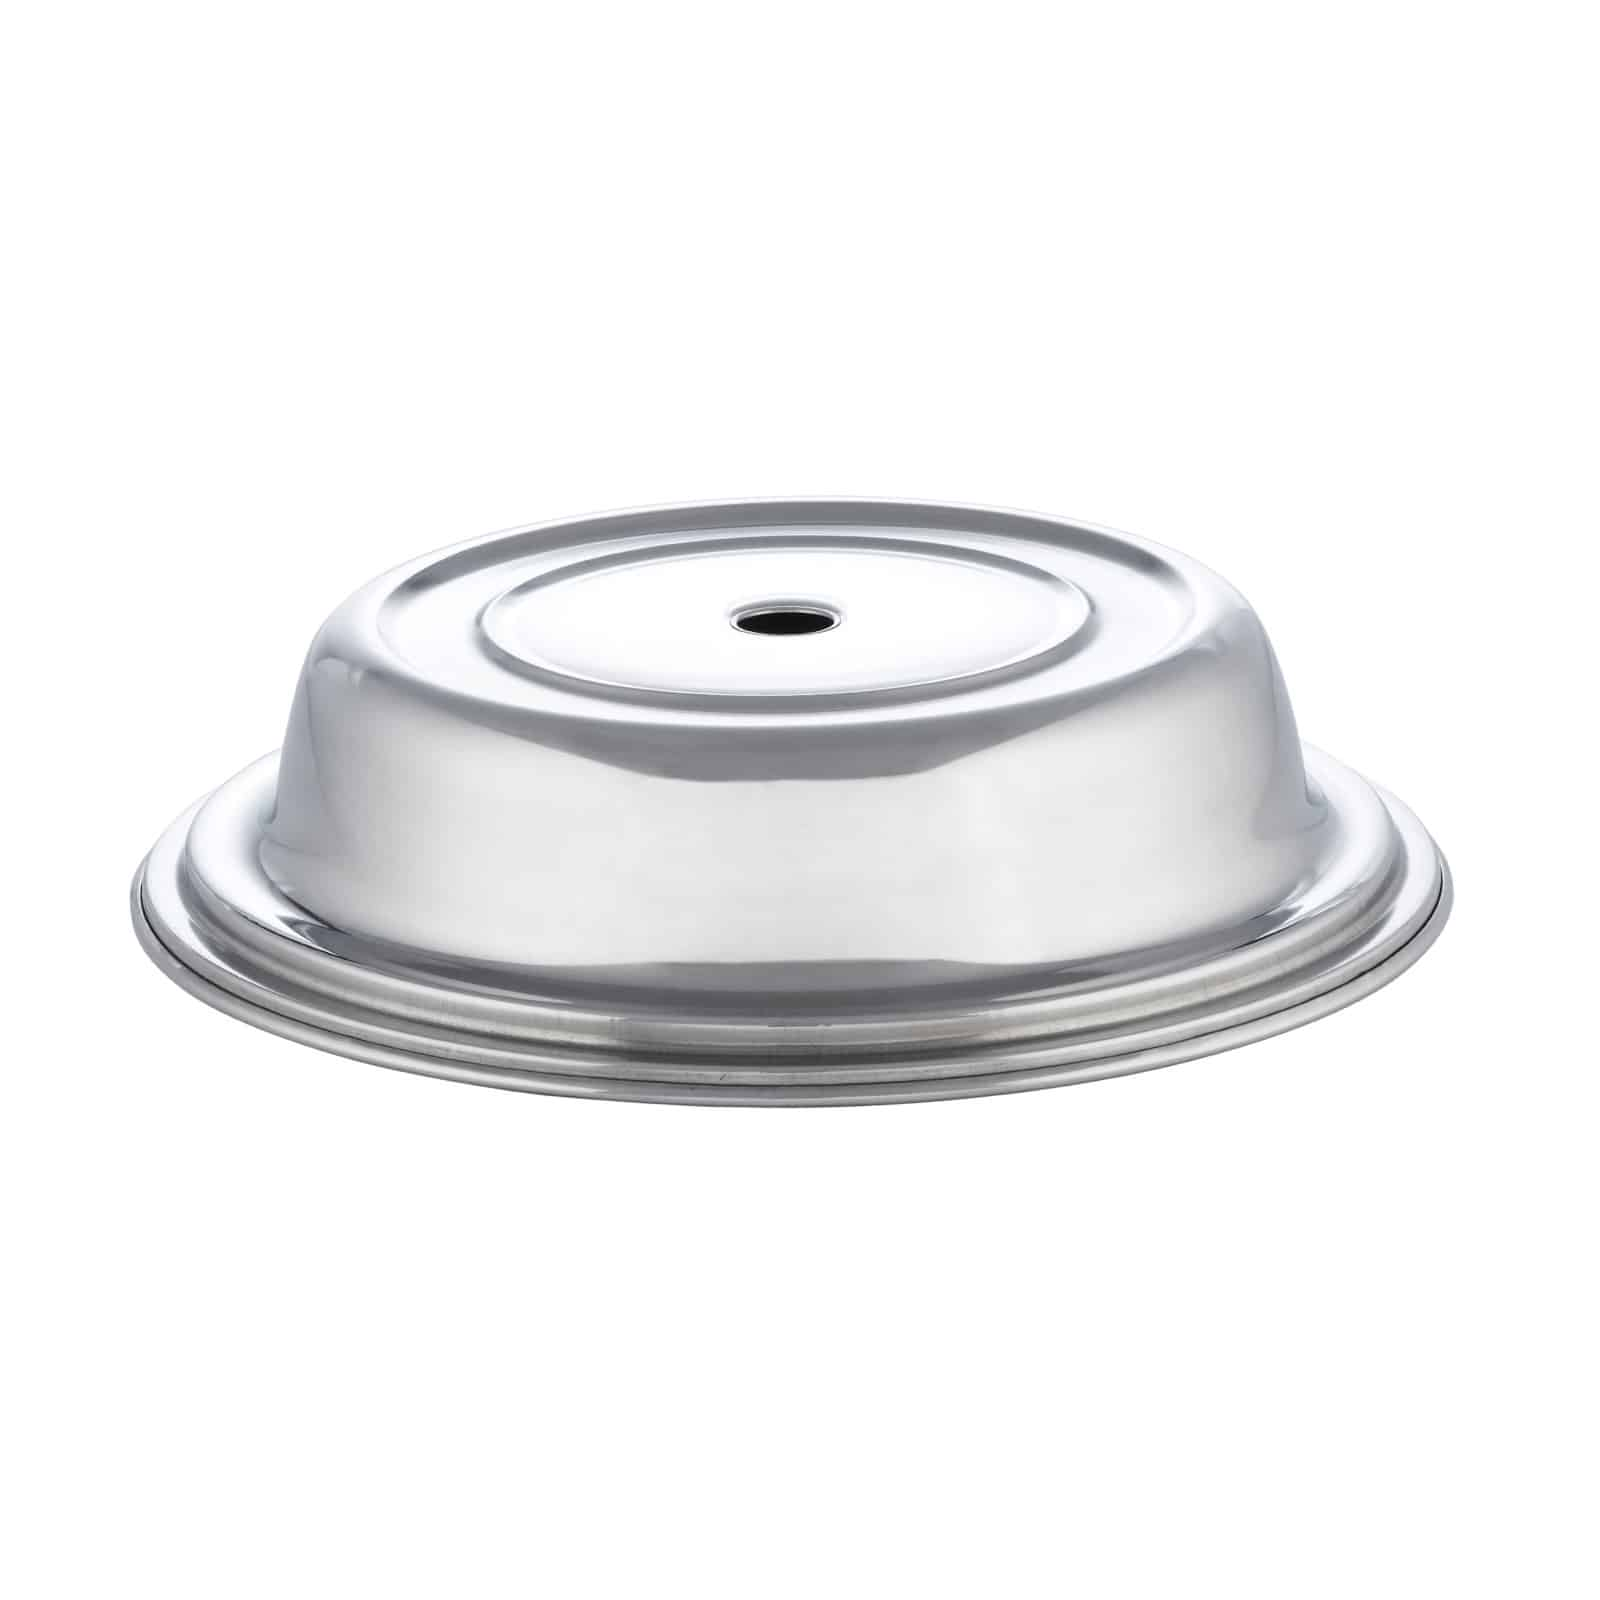 Plate Cover Plate Covers Round Custom Fitted Stainless Steel Plate Covers